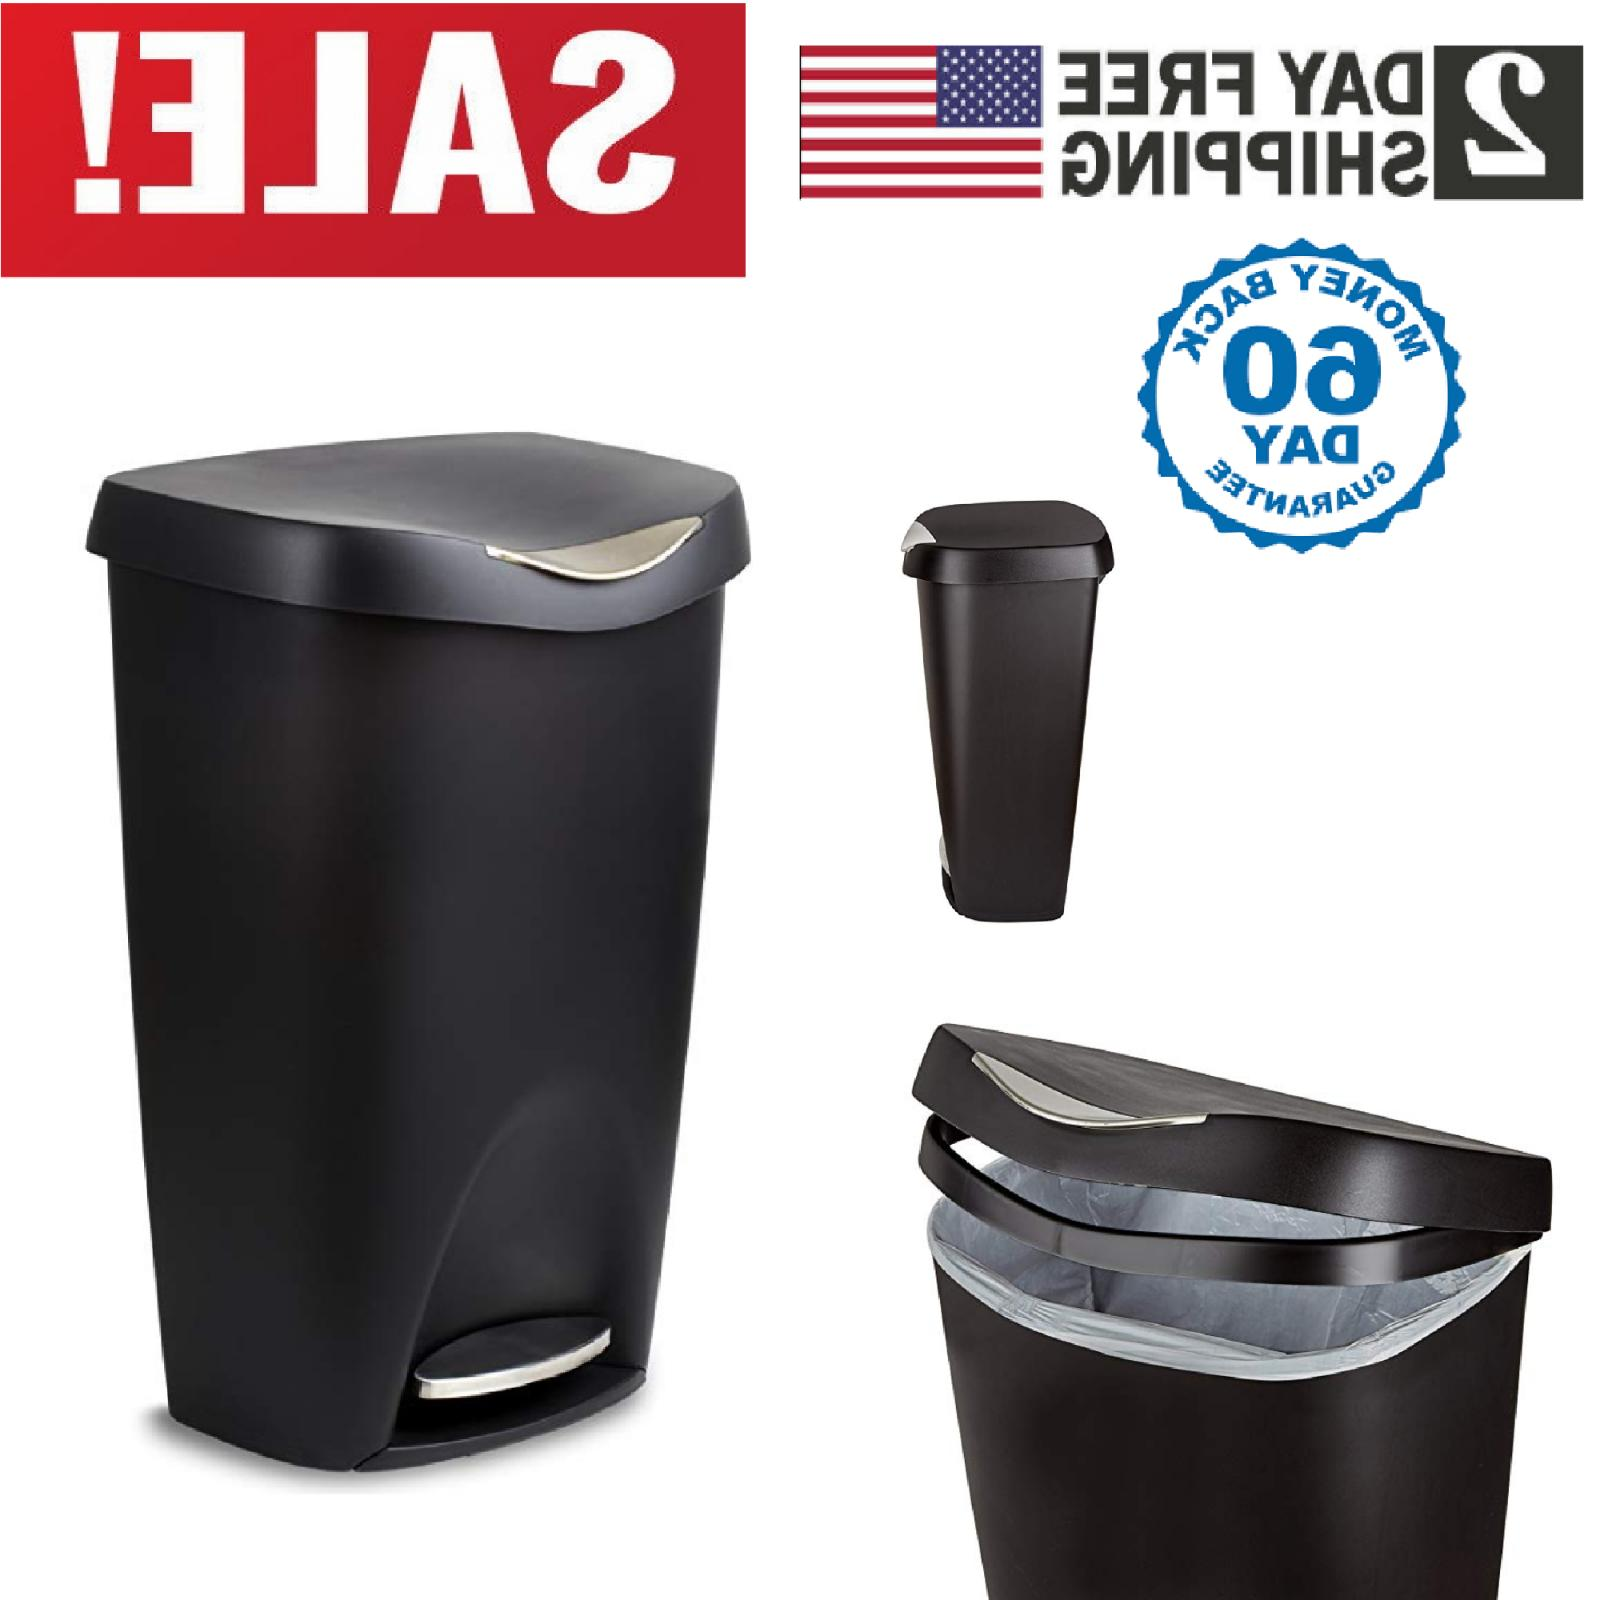 black stainless steel can trash 13 gallon